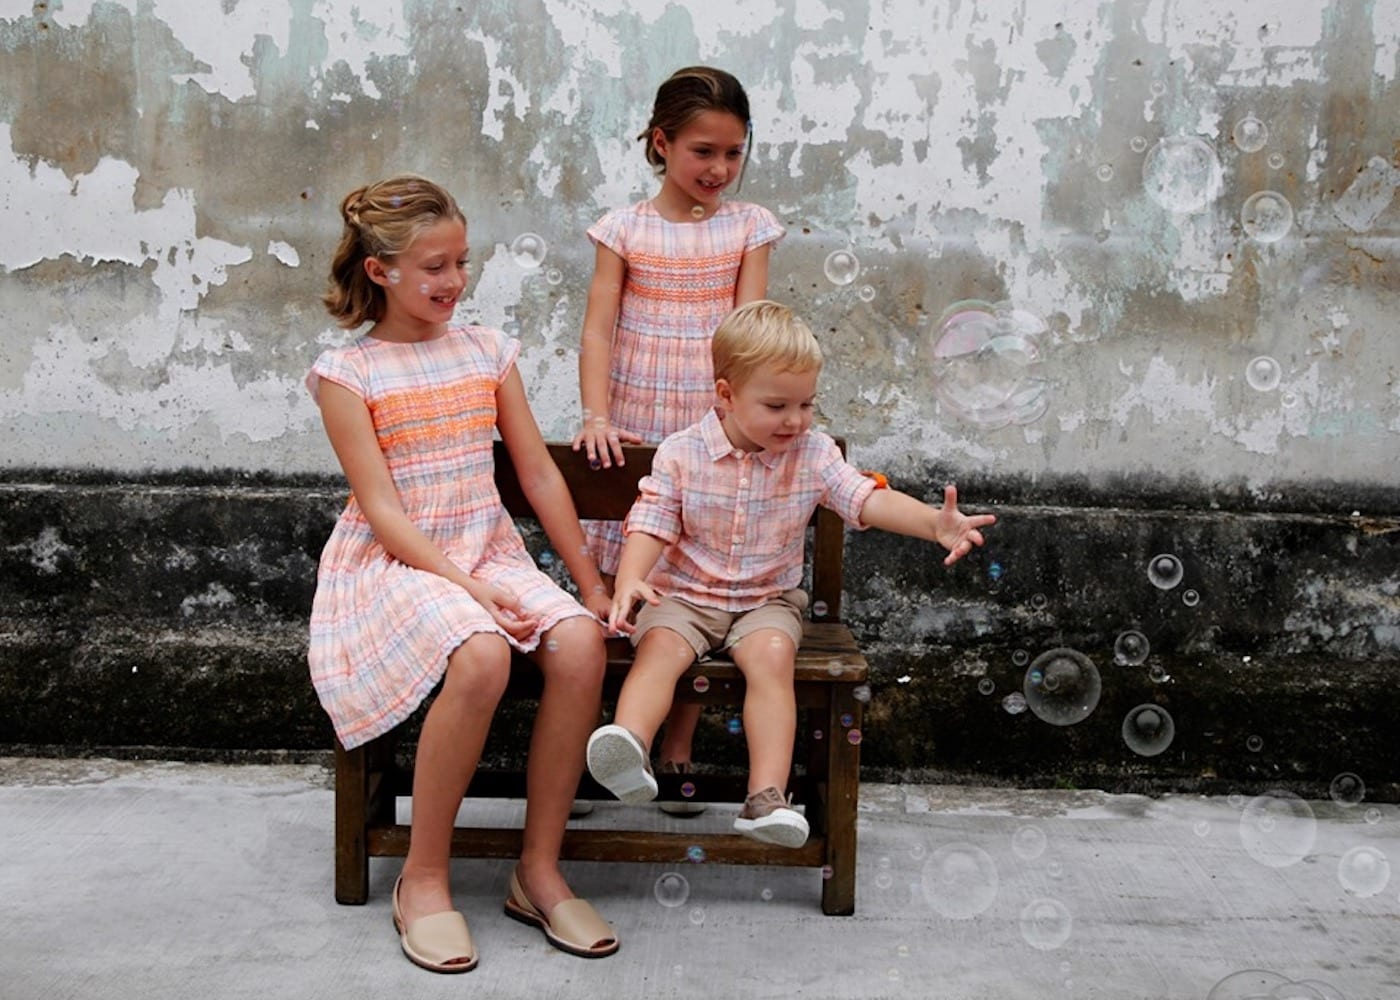 #Twinning: lad and dad, mommy and me matching outfits – Chateau de Sable